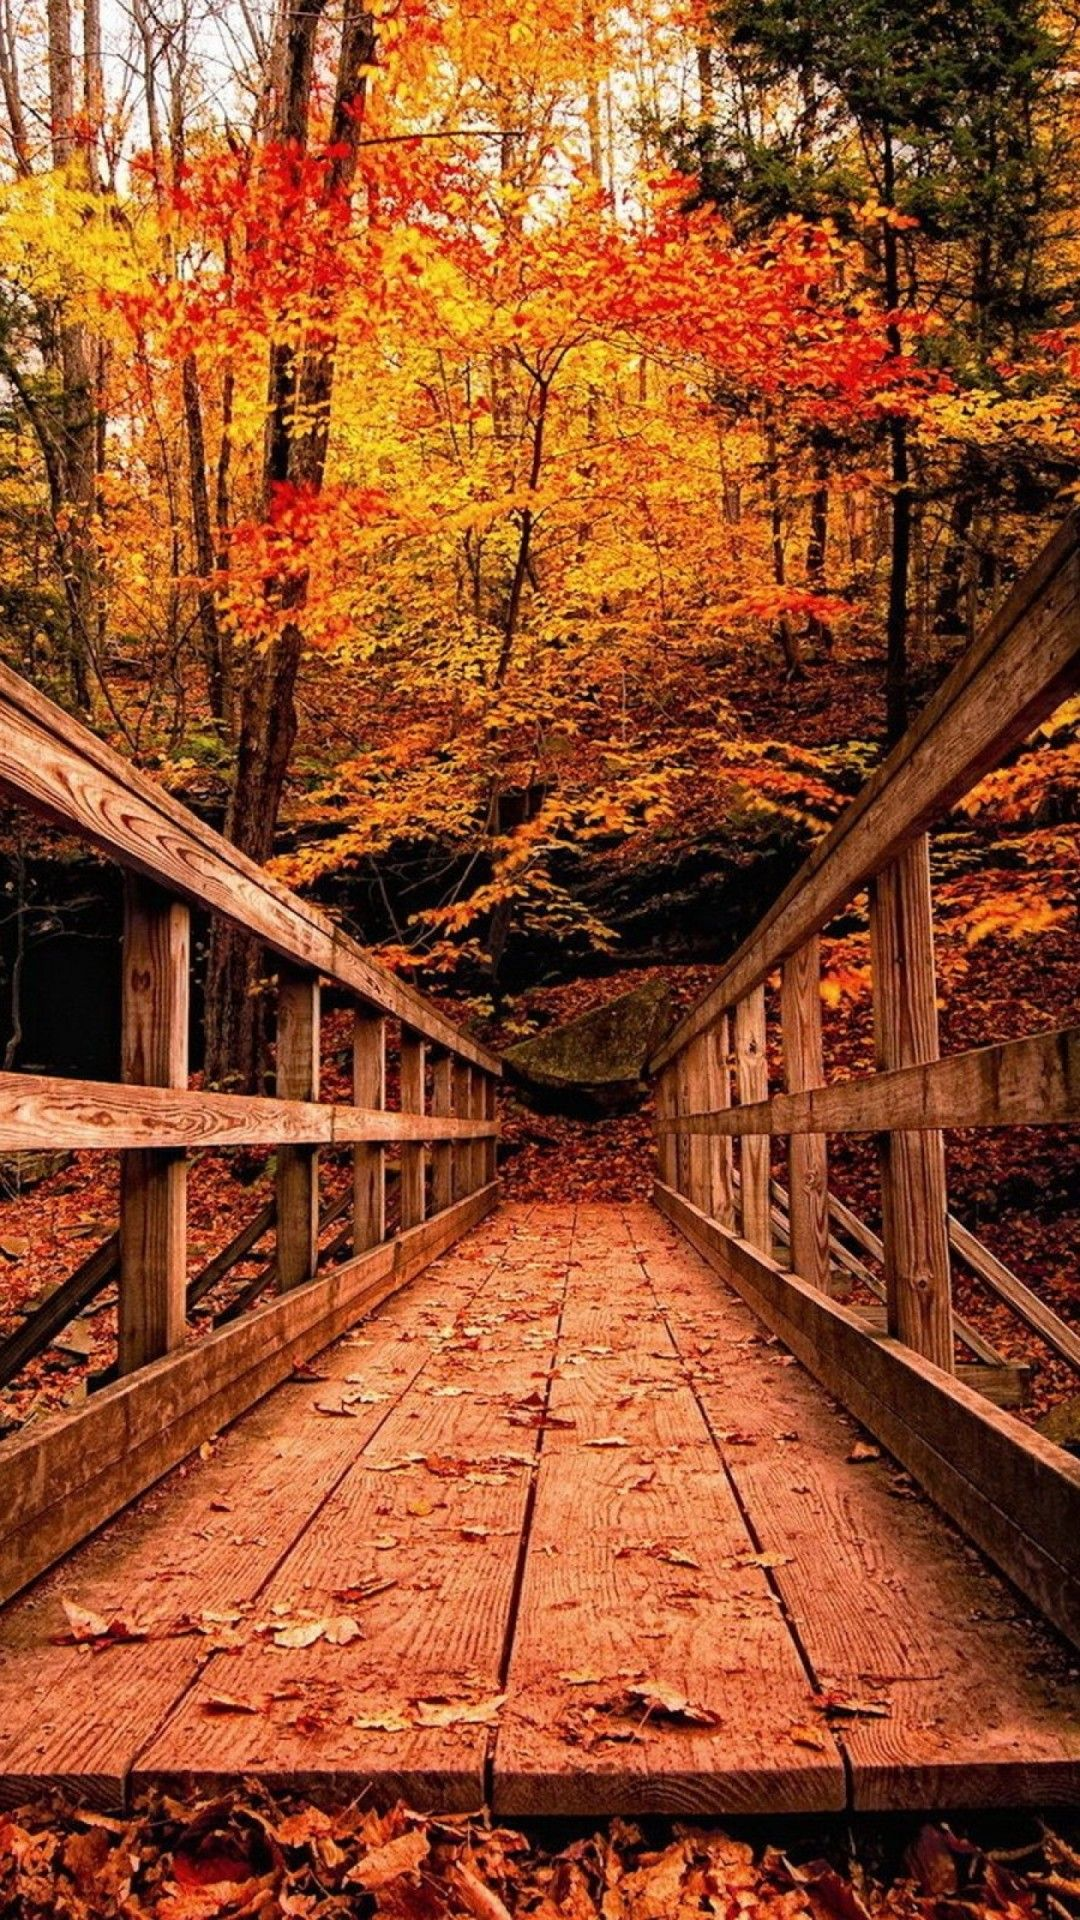 Wood Bridge in Autumn Forest HD Wallpaper Android Phone